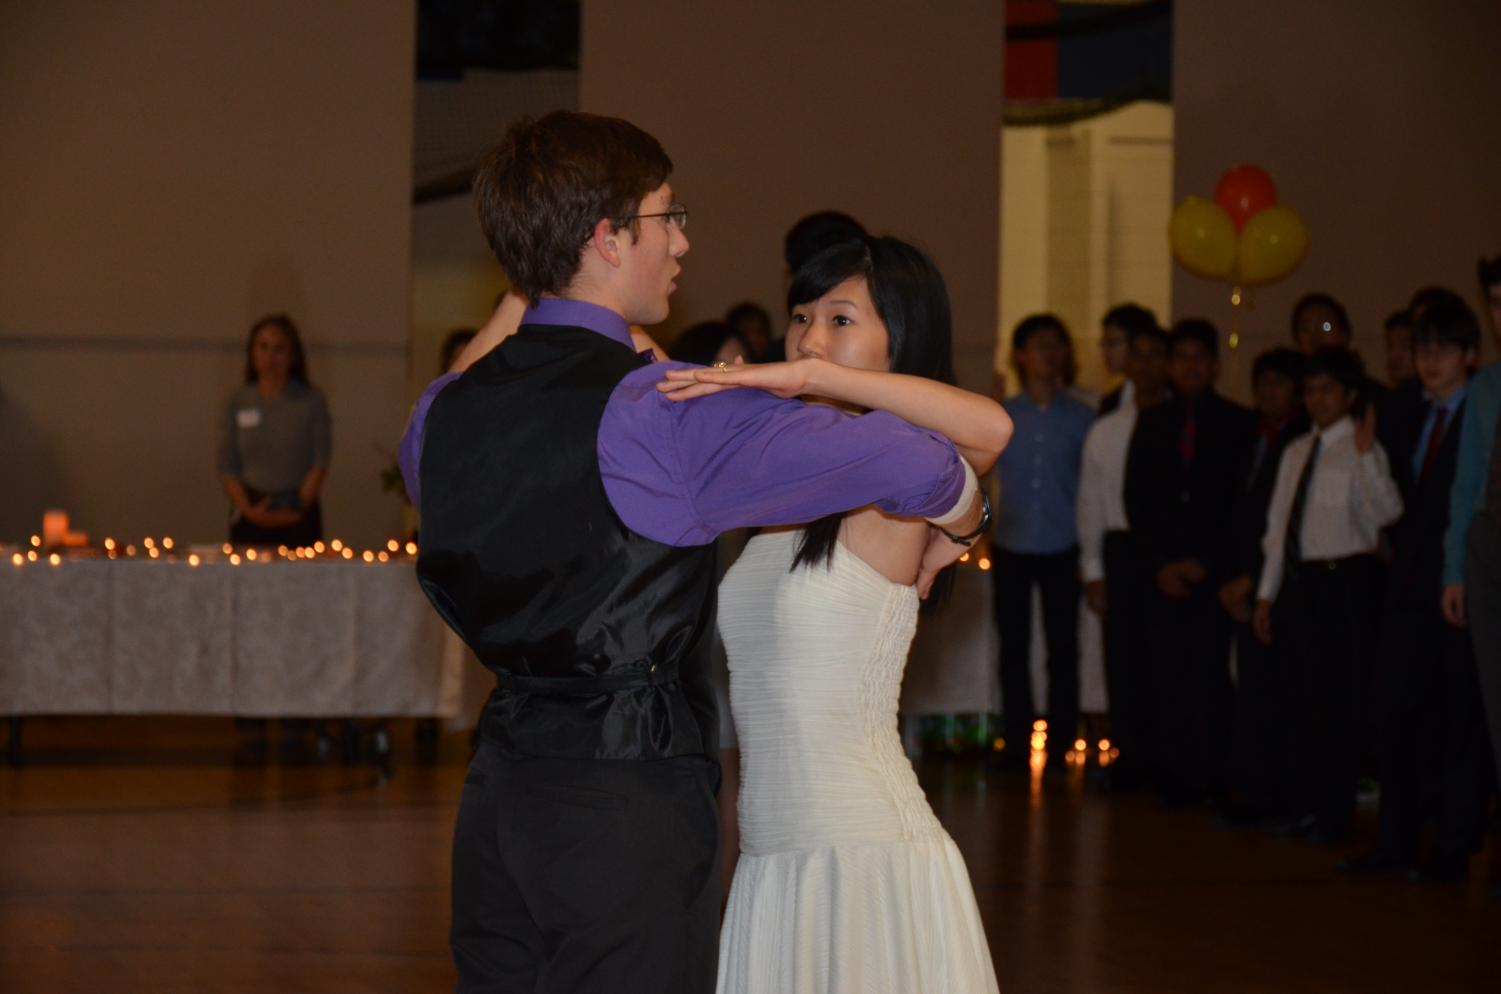 The tranquil atmosphere suffused with the strums and plucks of the orchestra prompted senior Max Judish to waltz alongside Class of 2016 graduate Andrea Tse at Nov. 17's annual Viennese Ball. Despite the greater entree fee, hundreds arrived to savor the melodic arrangements performed by students, where attendees danced away their stress and troubles through mesmerizing music.